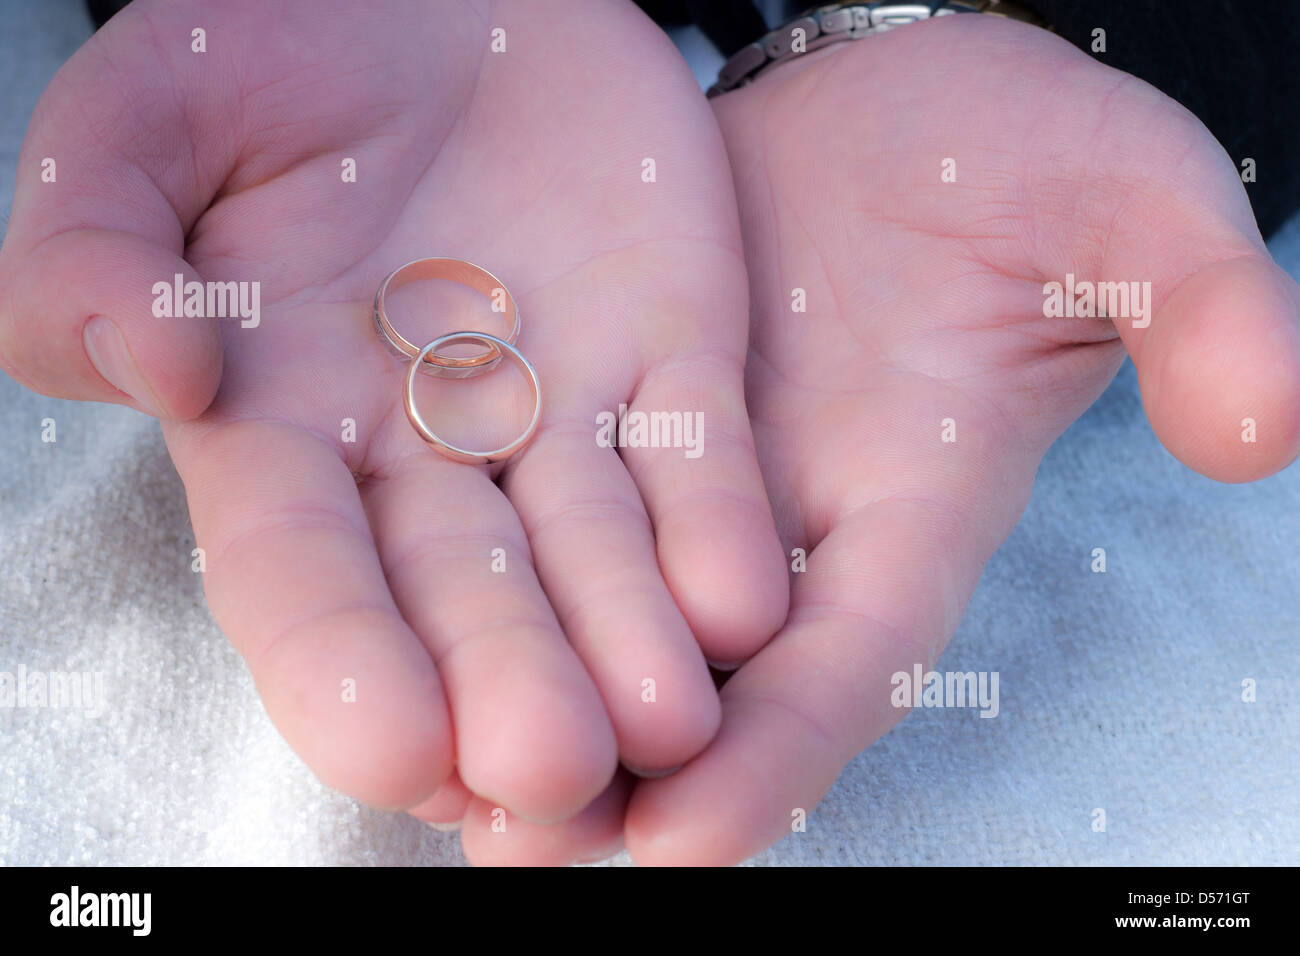 Accessory Parts Stock Photos & Accessory Parts Stock Images - Alamy